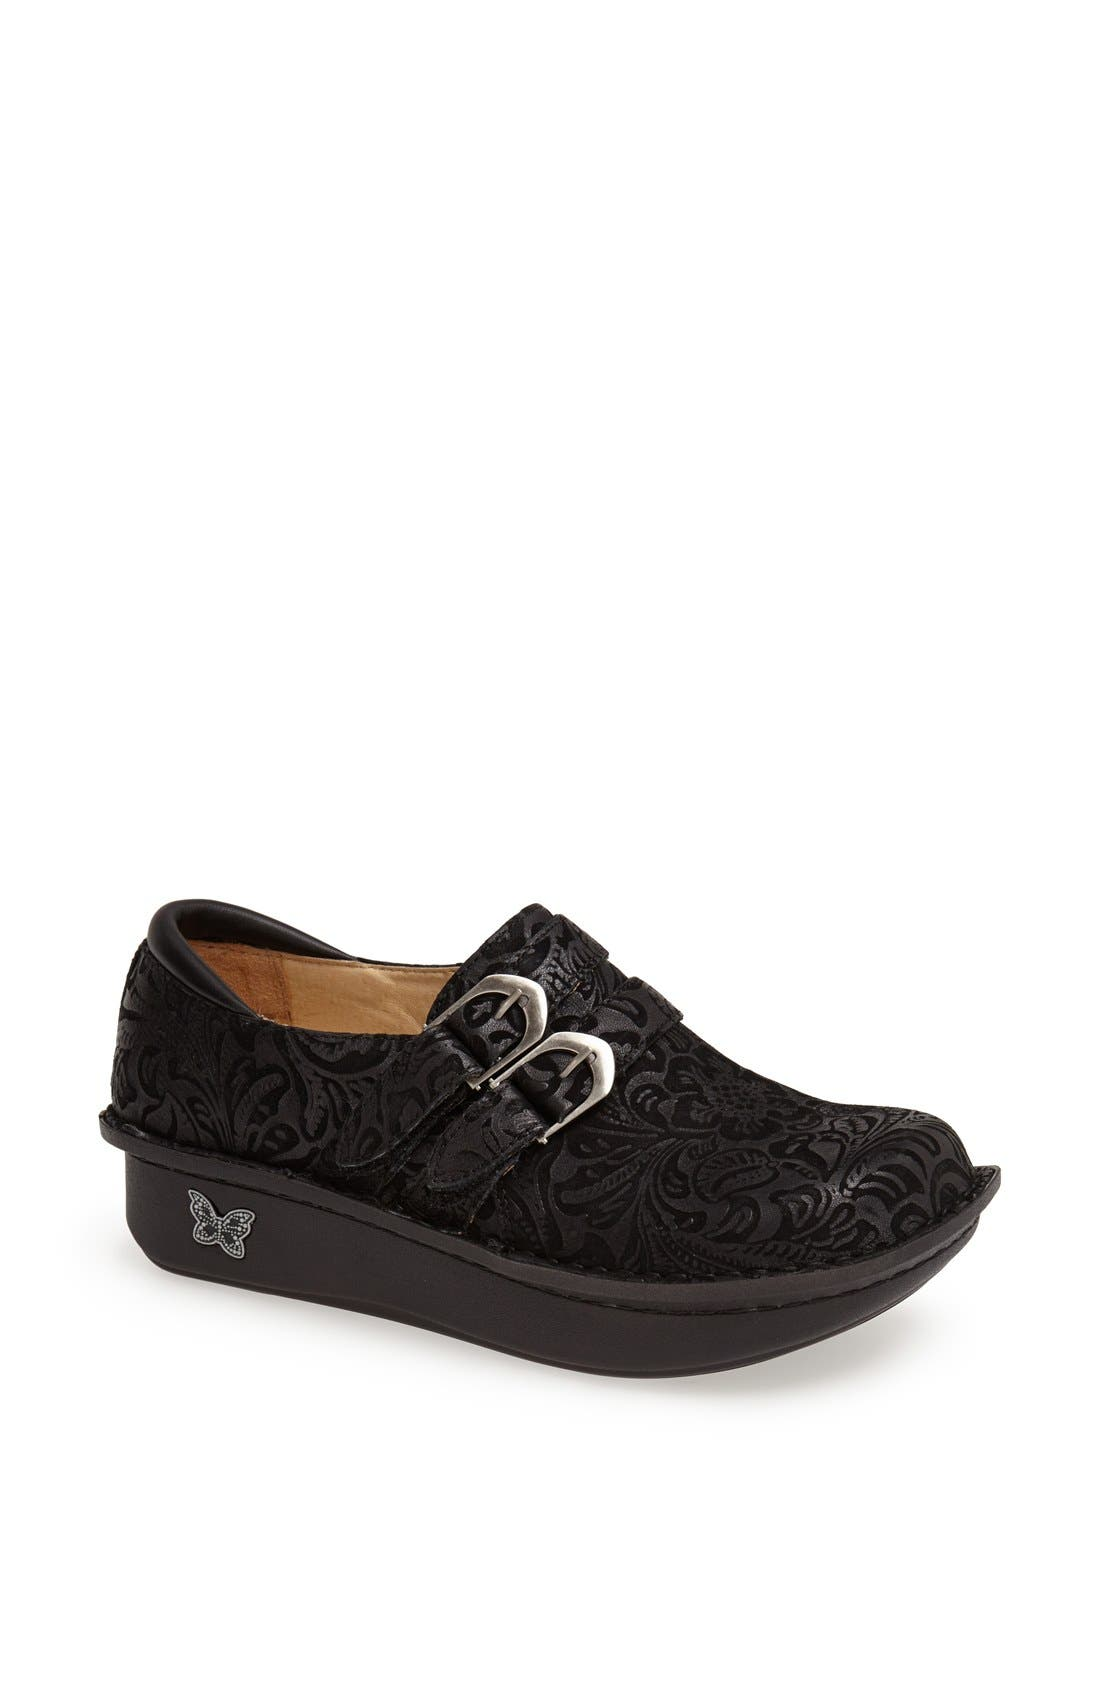 'Alli' Loafer,                             Main thumbnail 4, color,